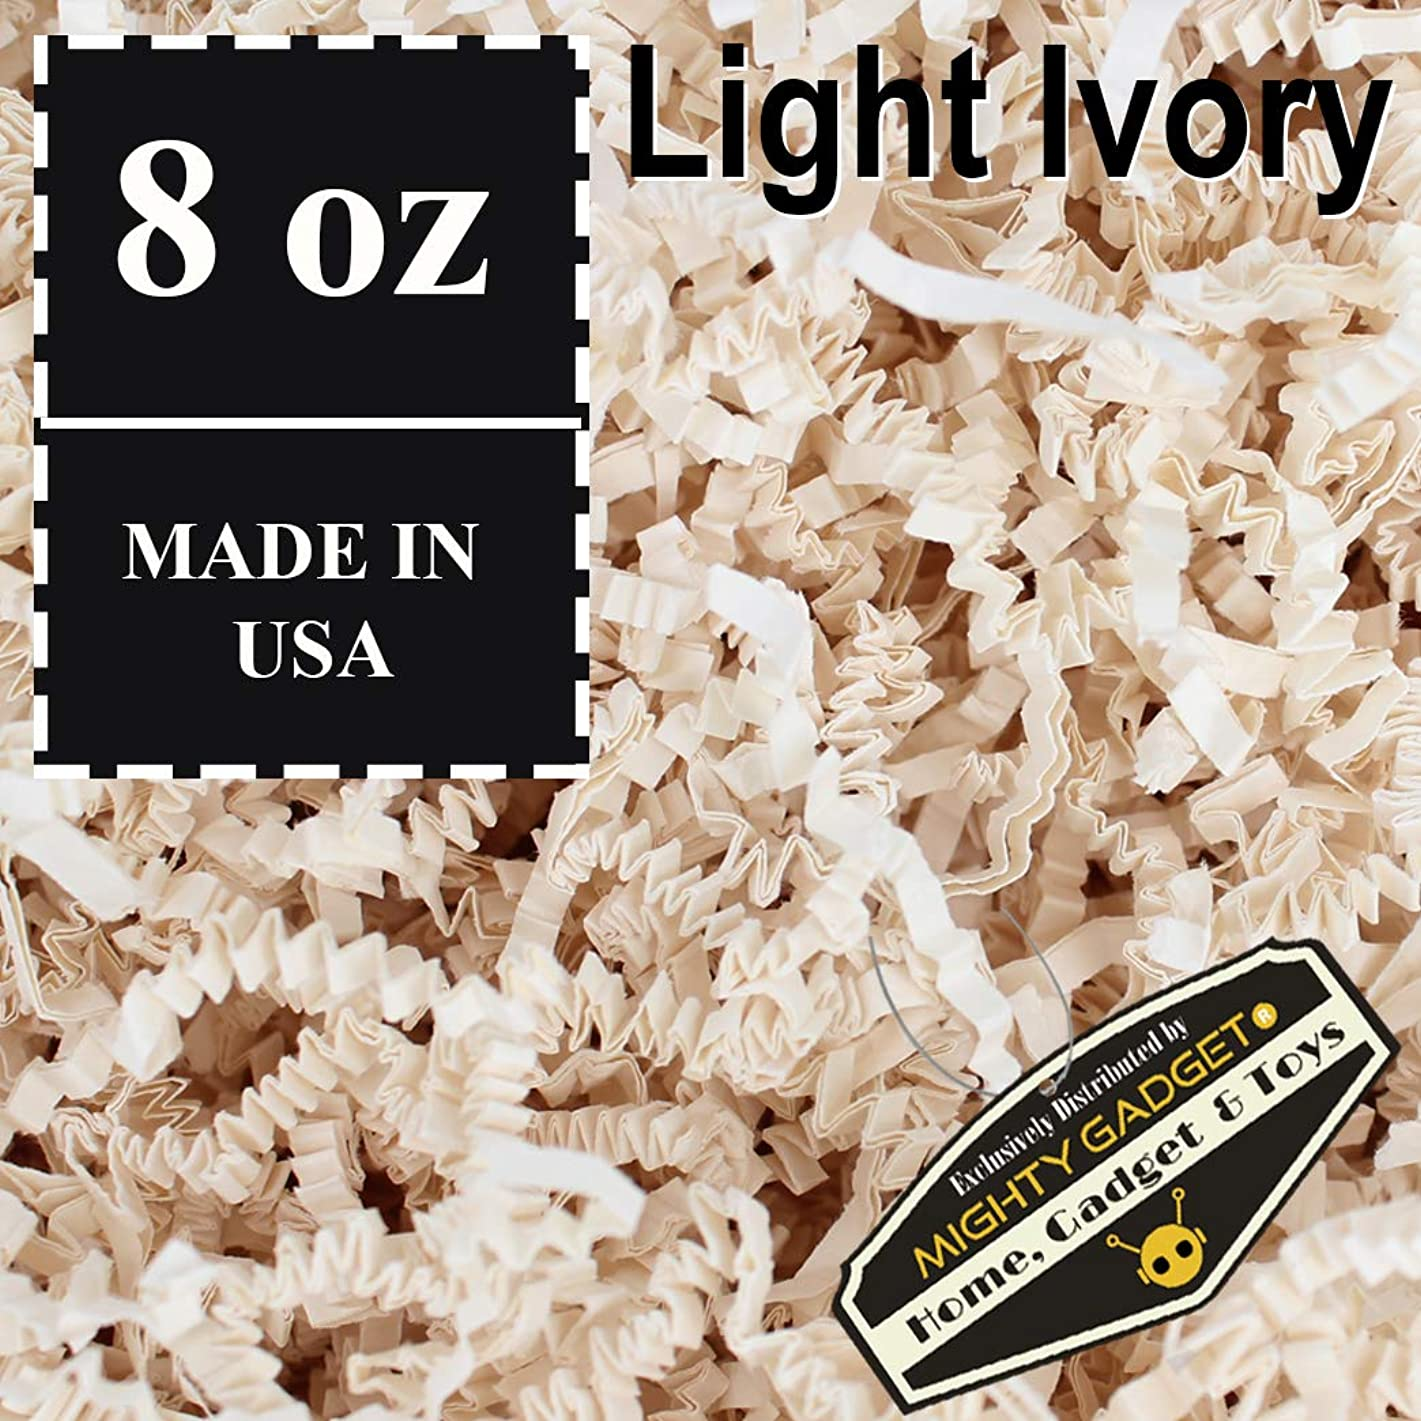 Mighty Gadget (R) 1/2 LB Light Ivory Crinkle Cut Paper Shred Filler for Gift Wrapping & Basket Filling